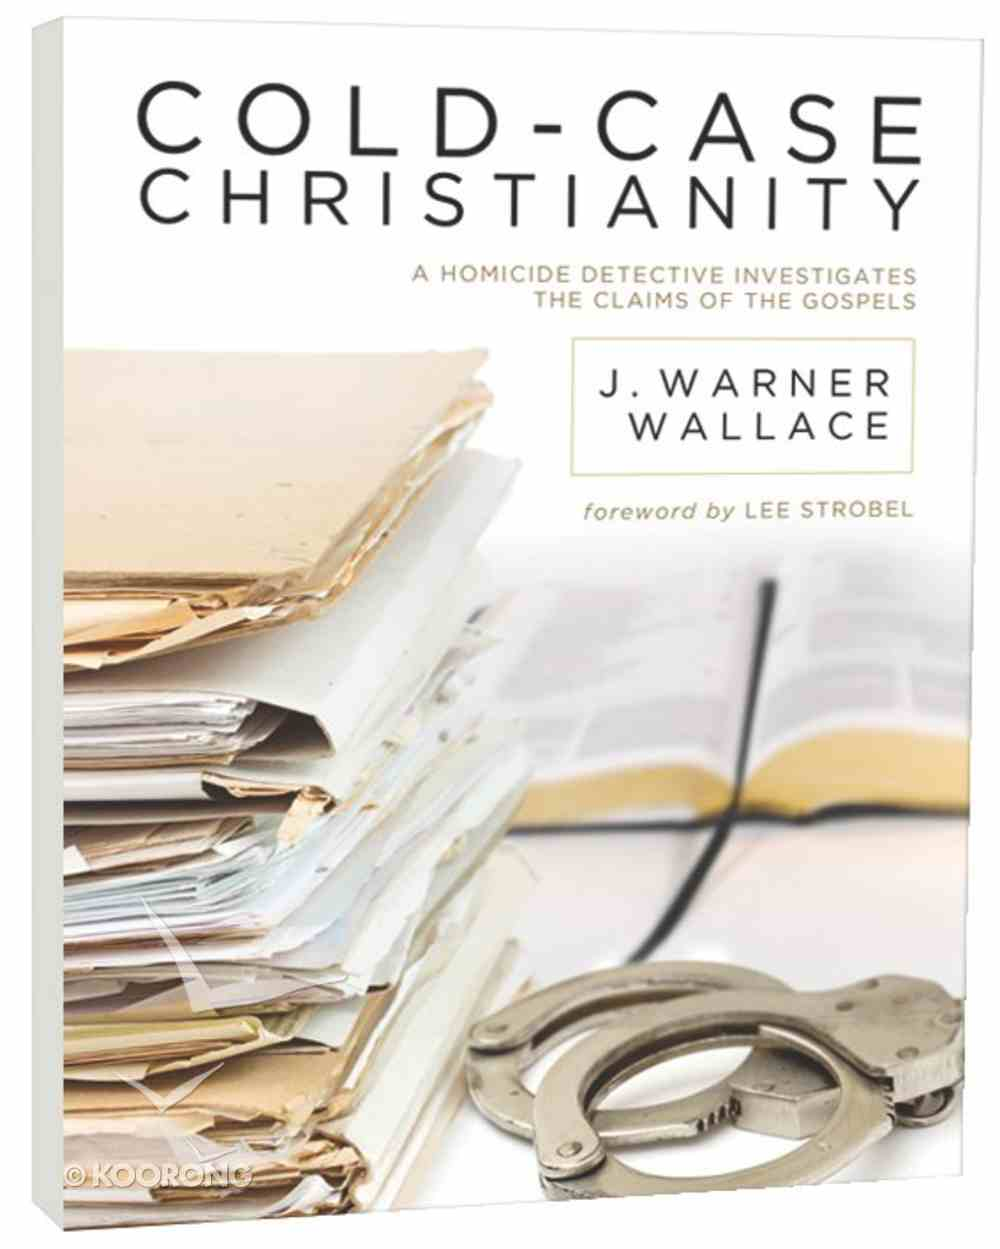 Cold-Case Christianity: A Homicide Detective Investigates the Claims of the Gospels Paperback